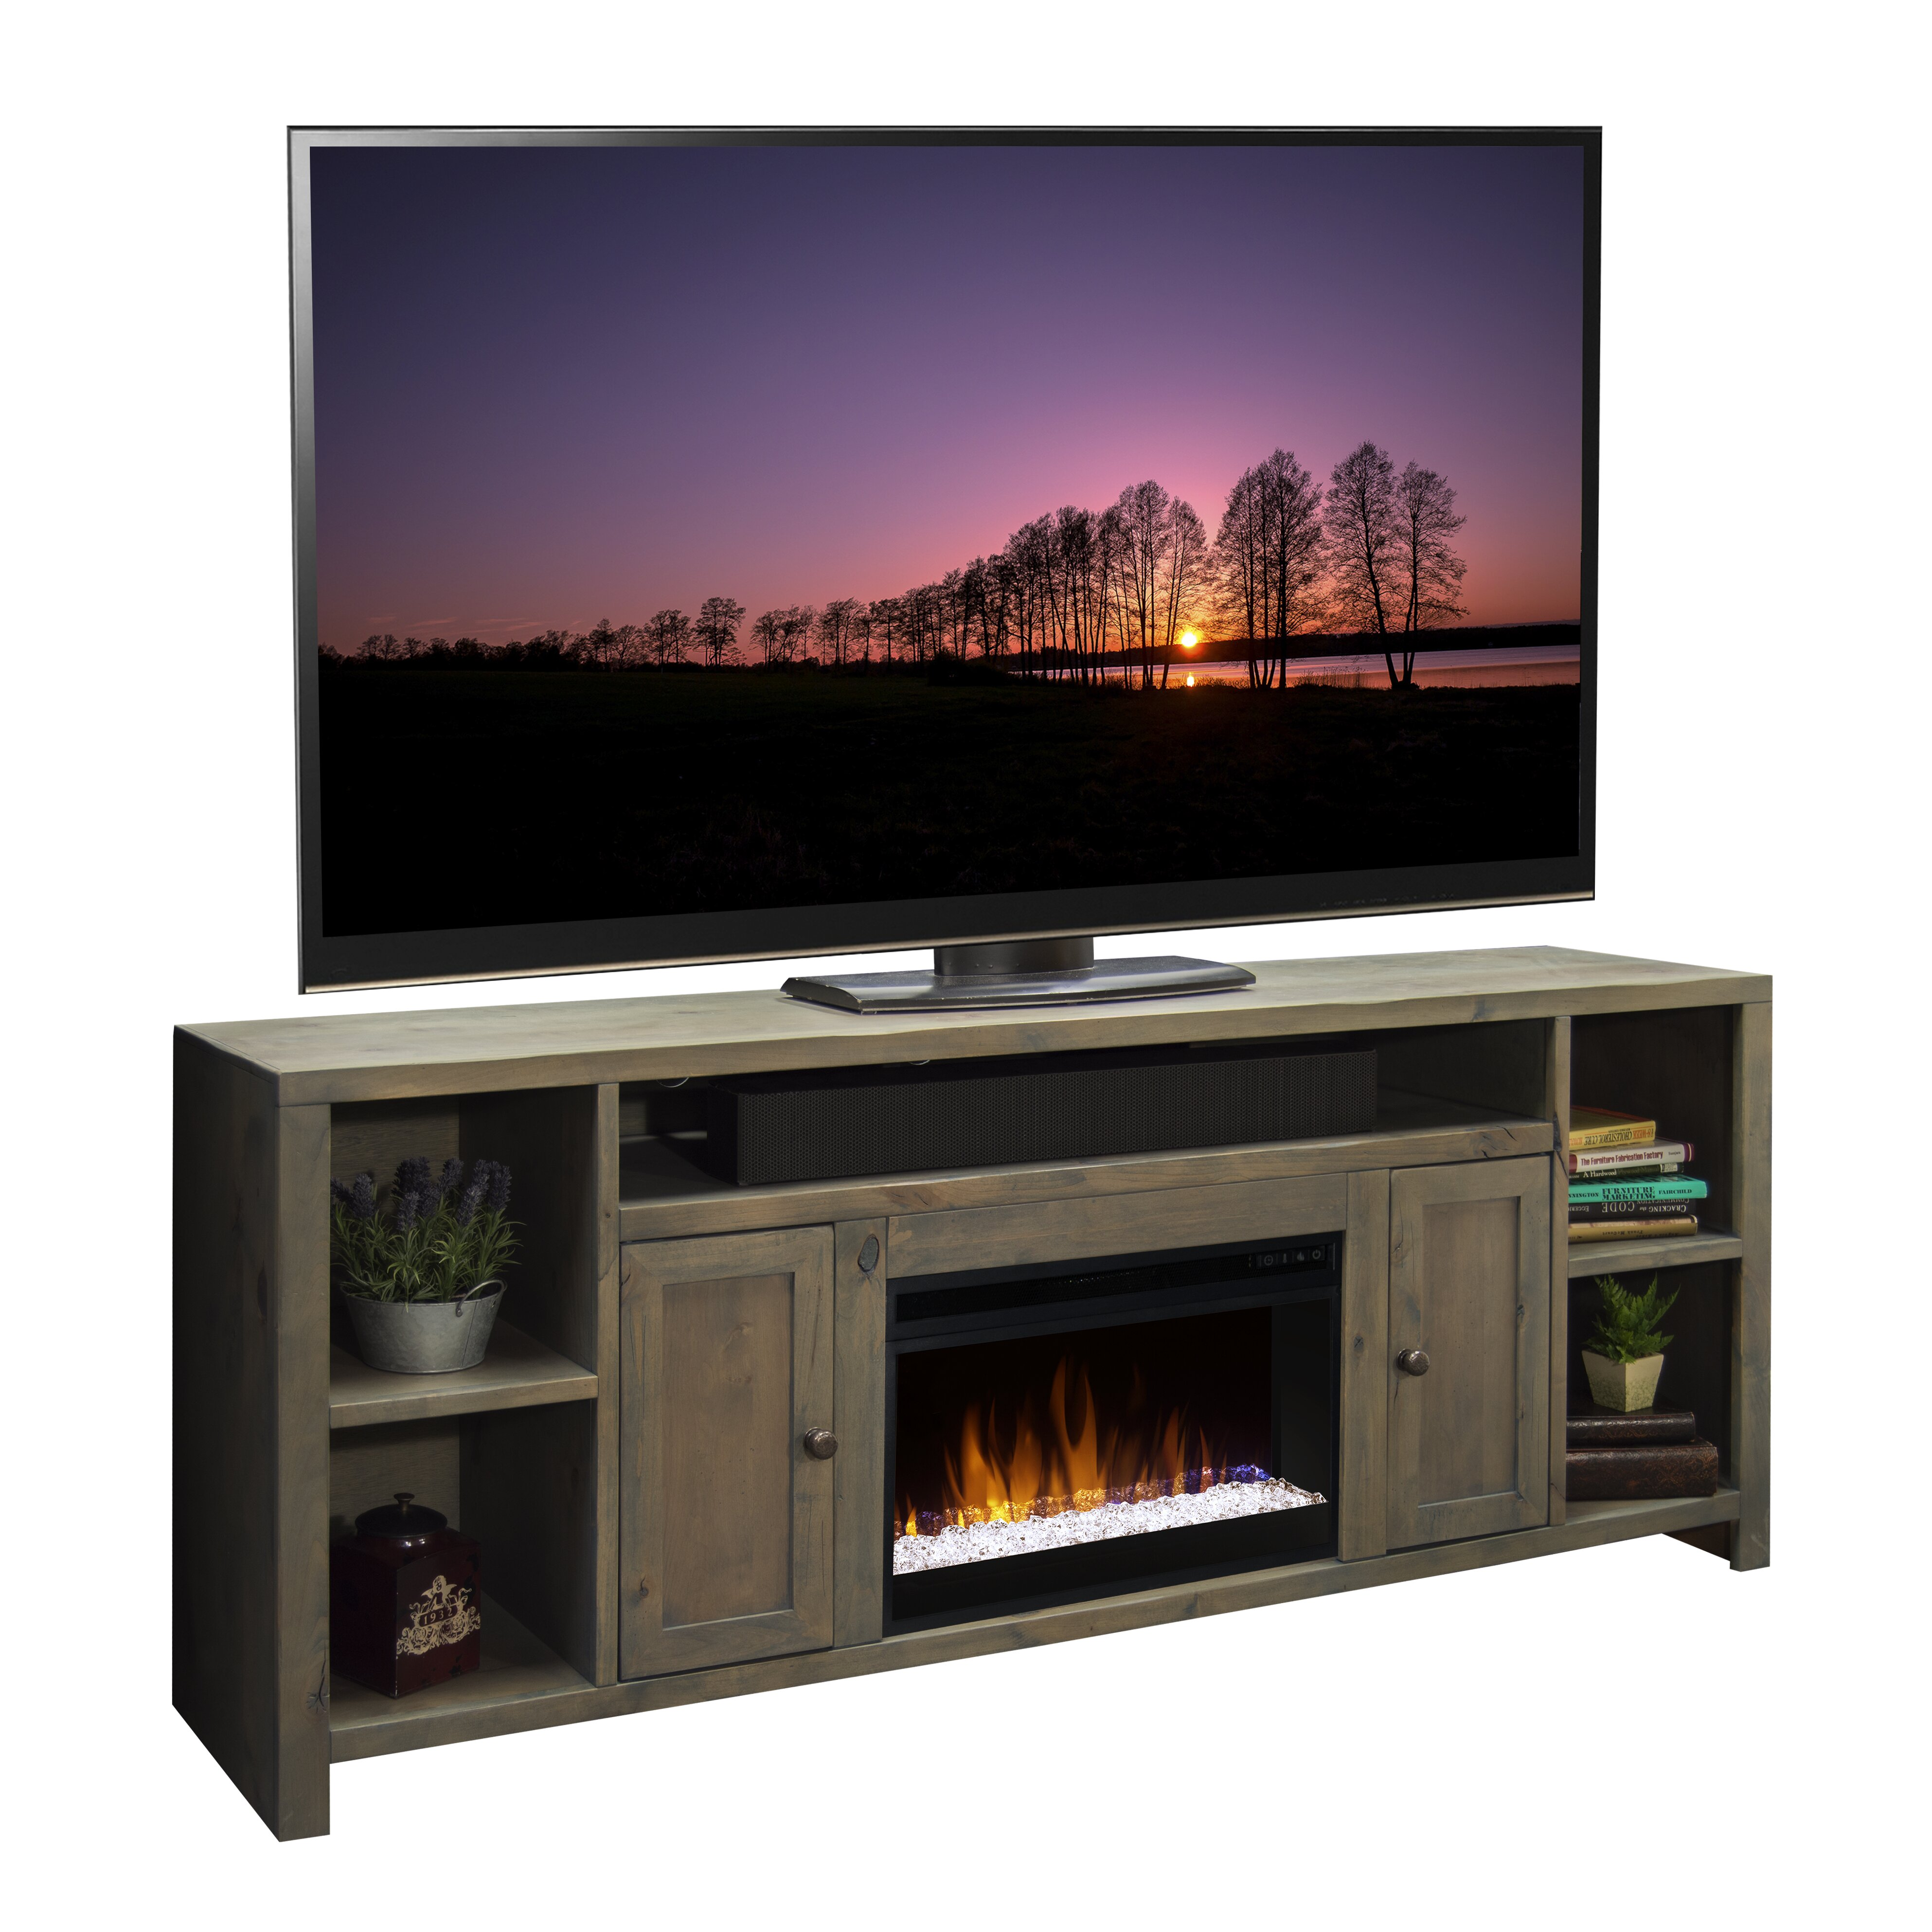 White tv stand with electric fireplace - Columbus 84 Tv Stand With Electric Fireplace